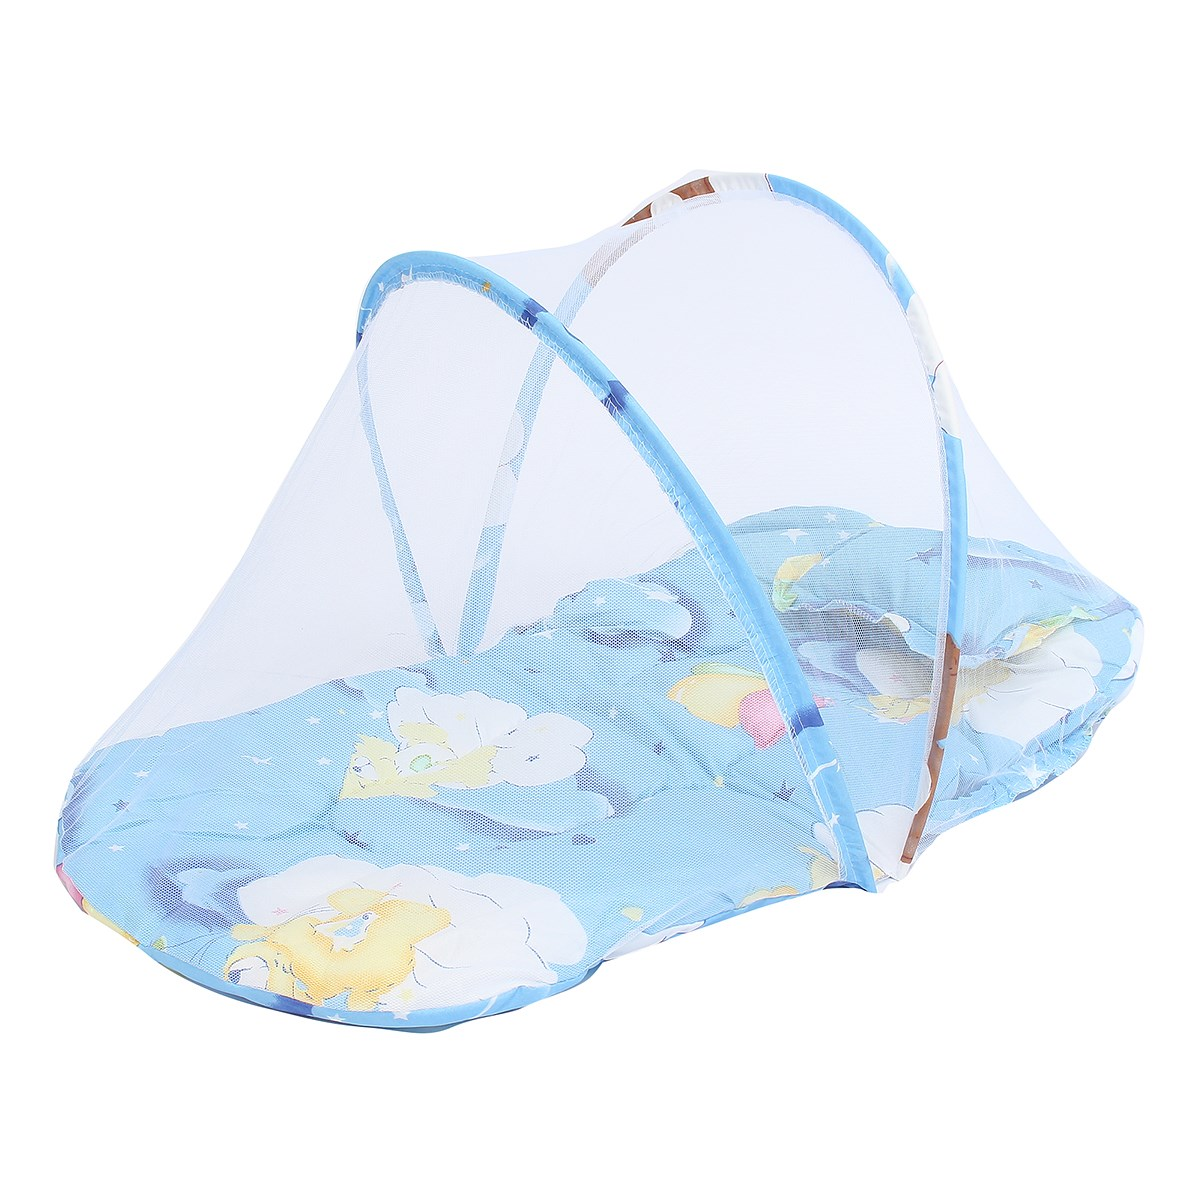 Baby bed camping - Portable Polyester Baby Infant Canopy Mosquito Net Foldable Tent Bed Crib Netting Pillow Home Bedrooom Textiles